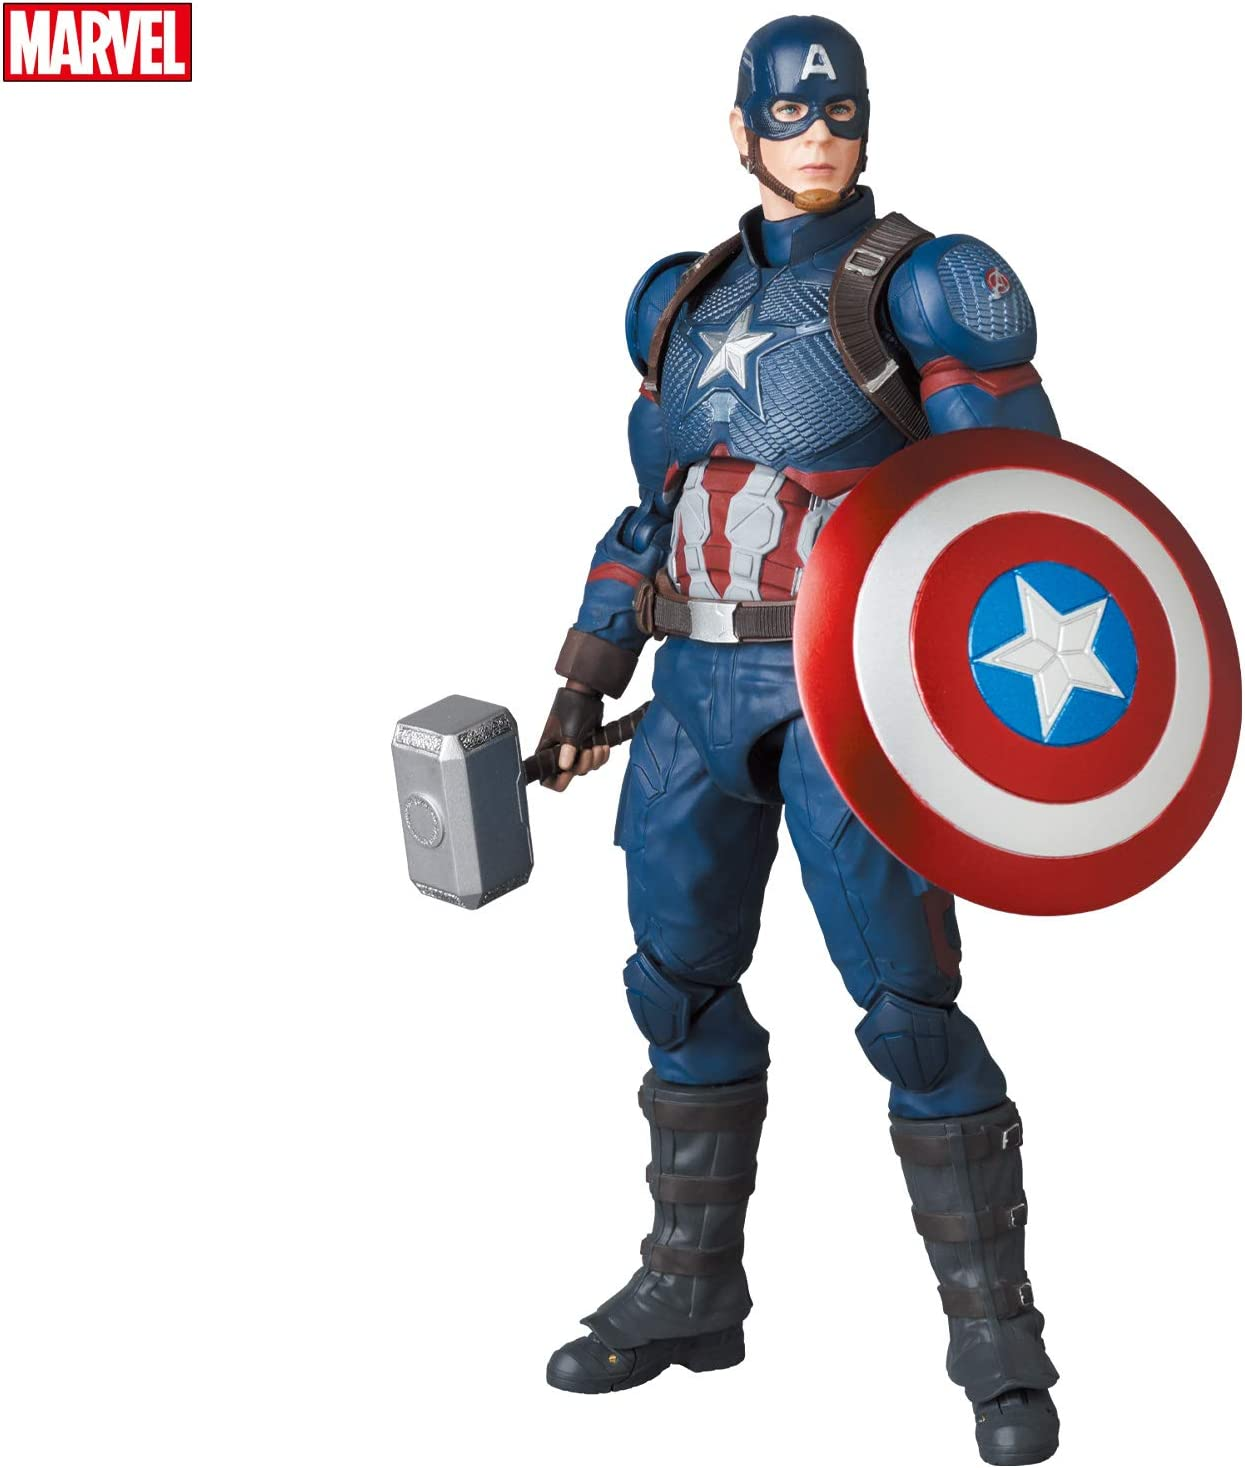 MAFEX マフェックス No.130 CAPTAIN AMERICA キャプテン アメリカ ENDGAME Ver.